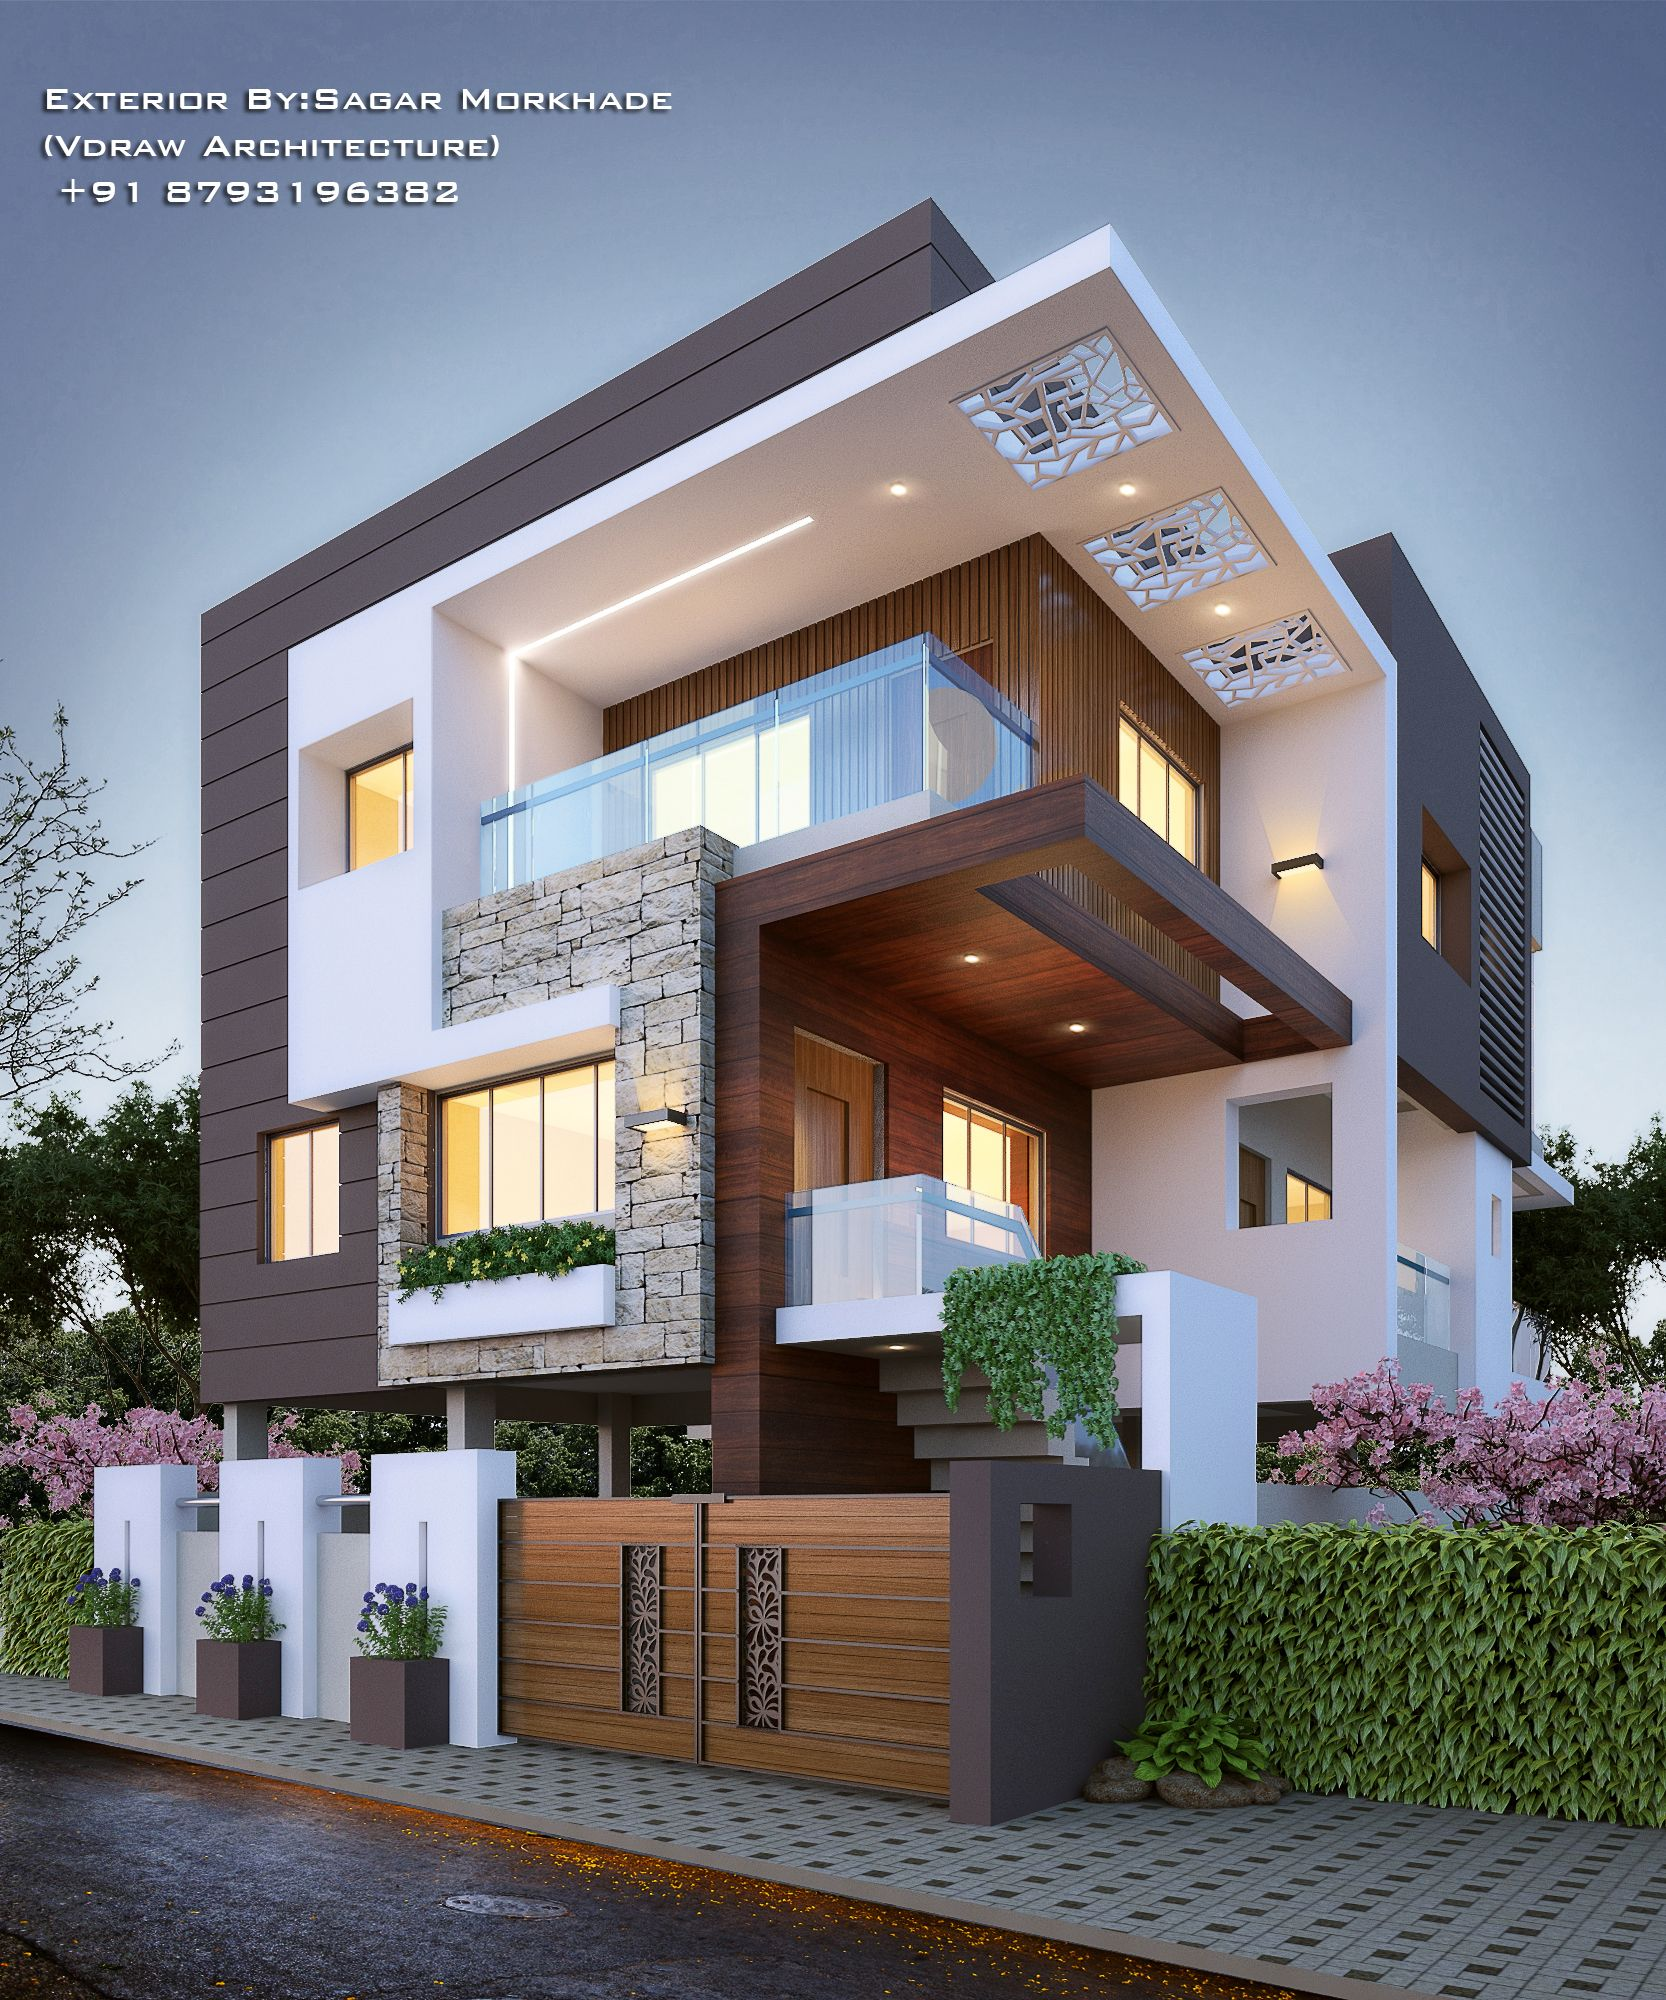 30 Contemporary Home Exterior Design Ideas: #Modern #Residential #Exterior By, Ar. Sagar Morkhade